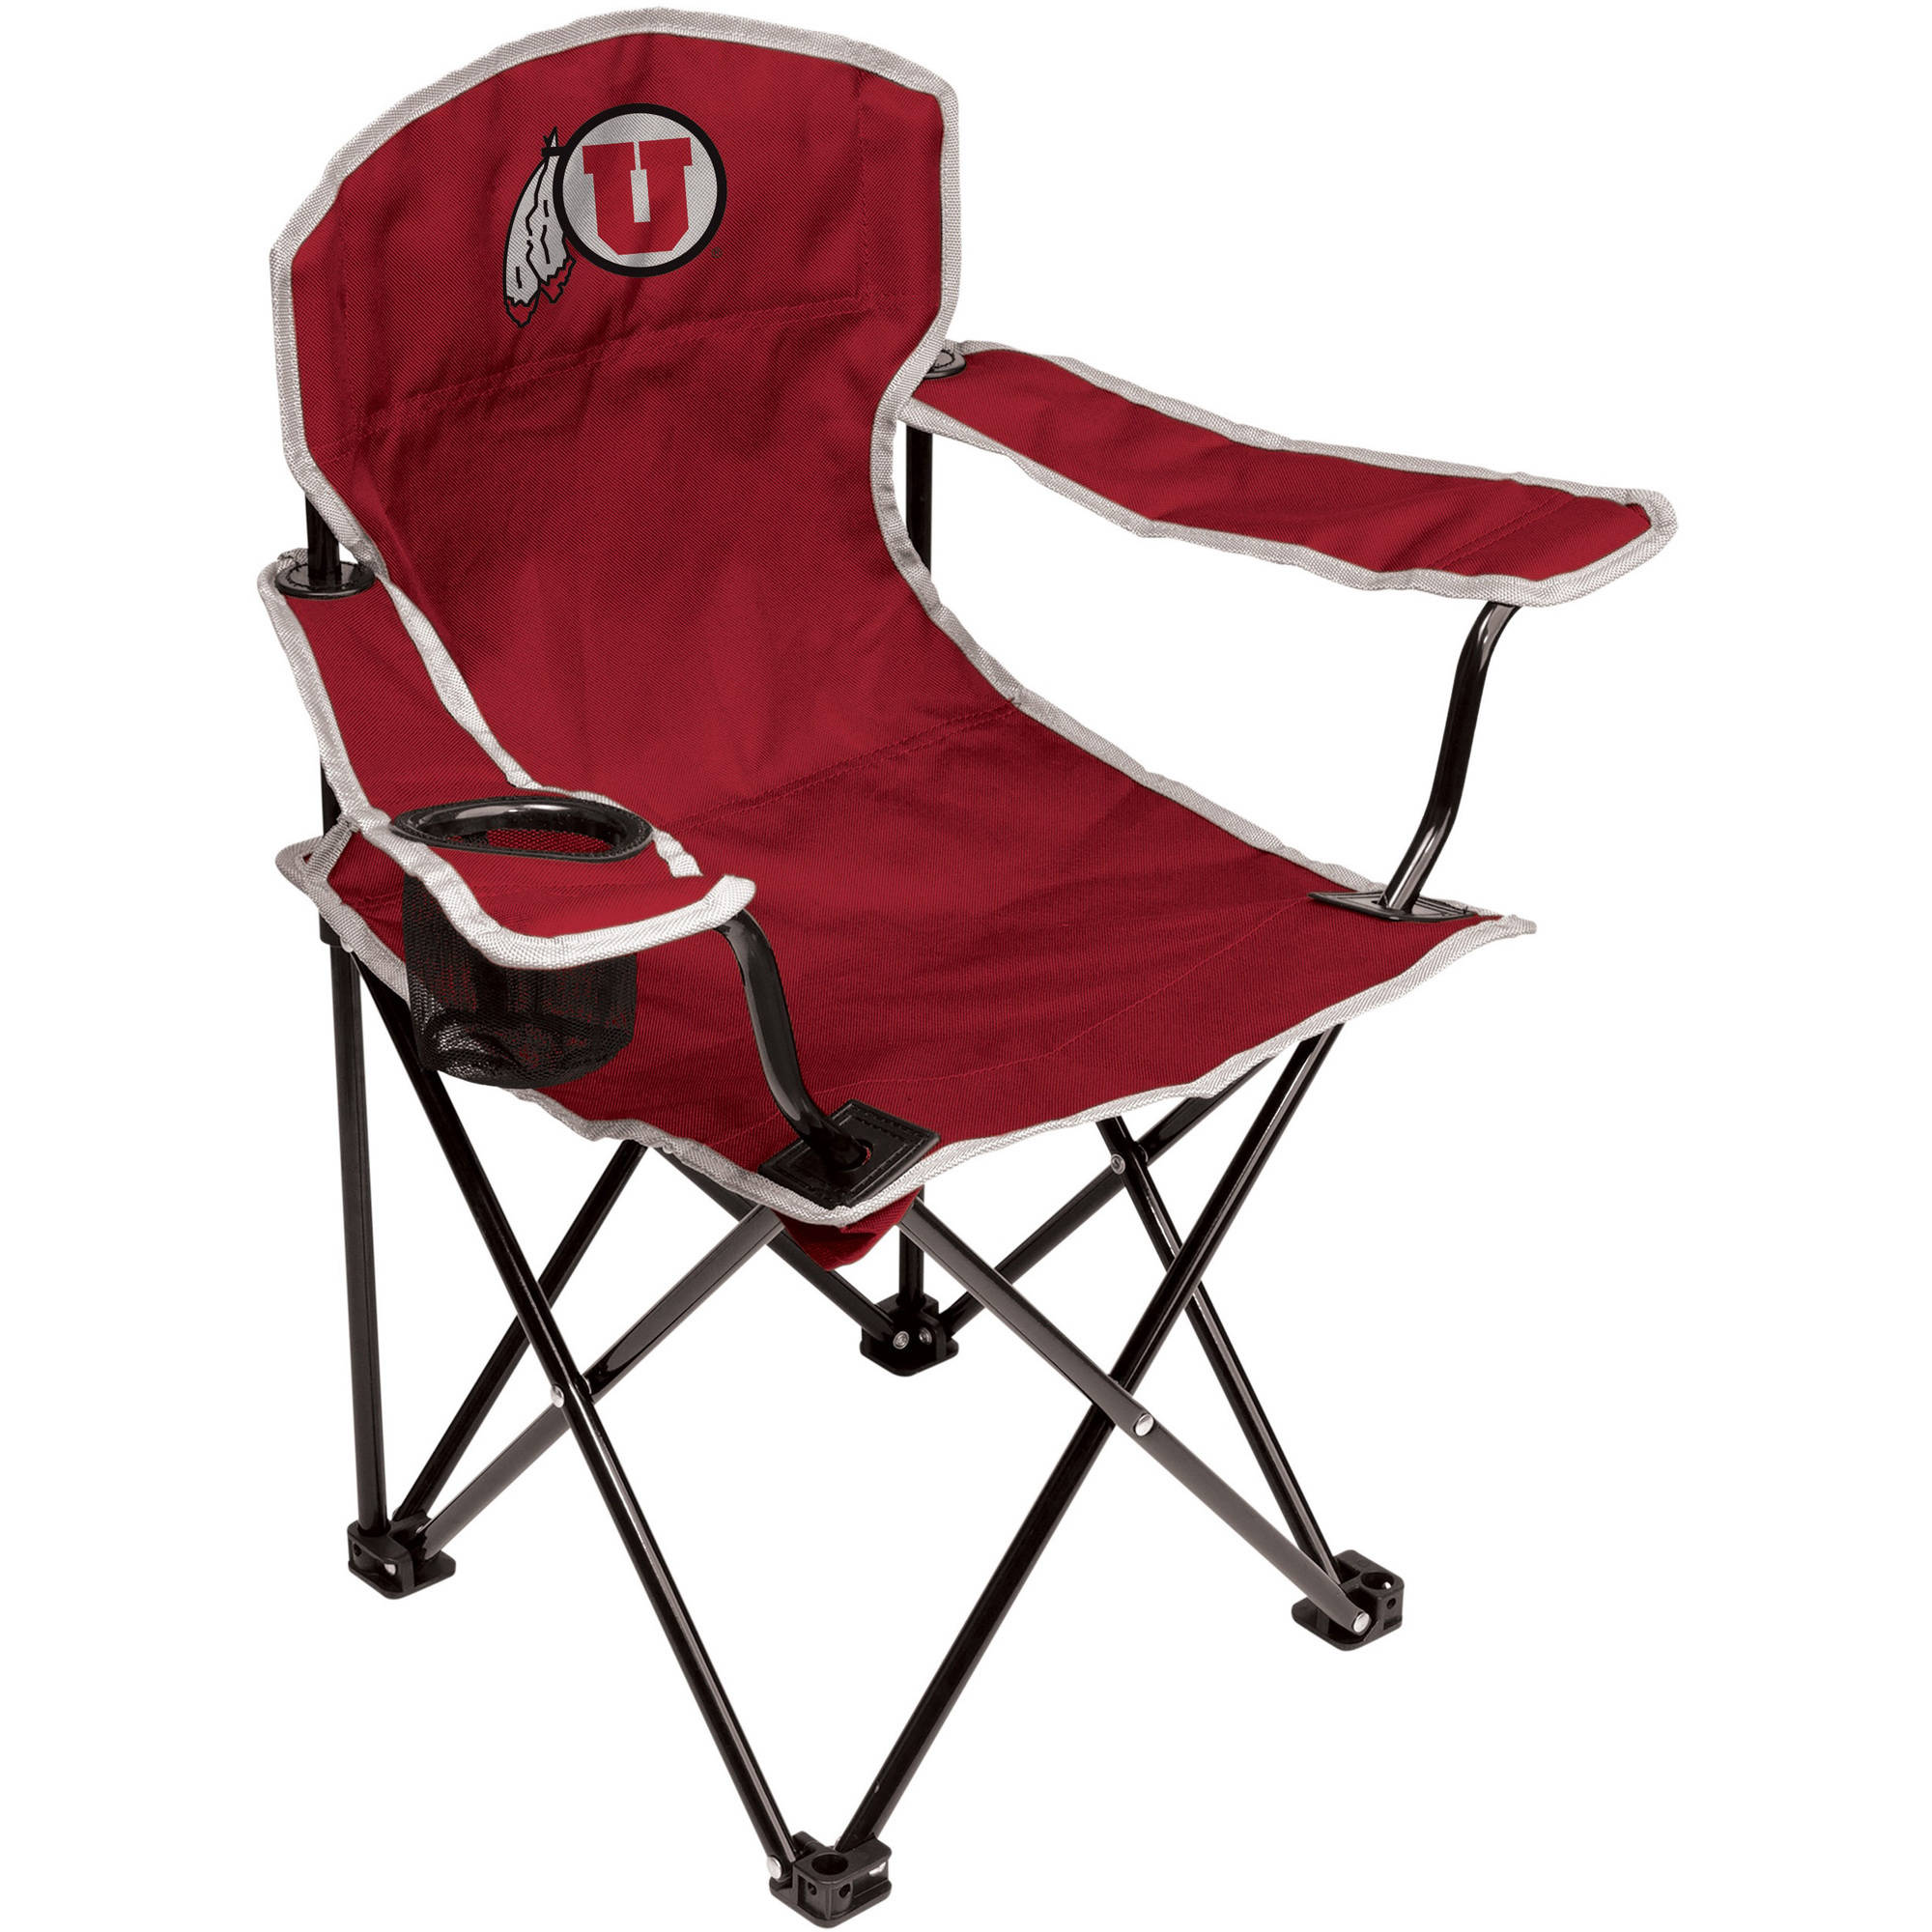 NCAA Utah Utes Youth Size Tailgate Chair from Coleman by Rawlings